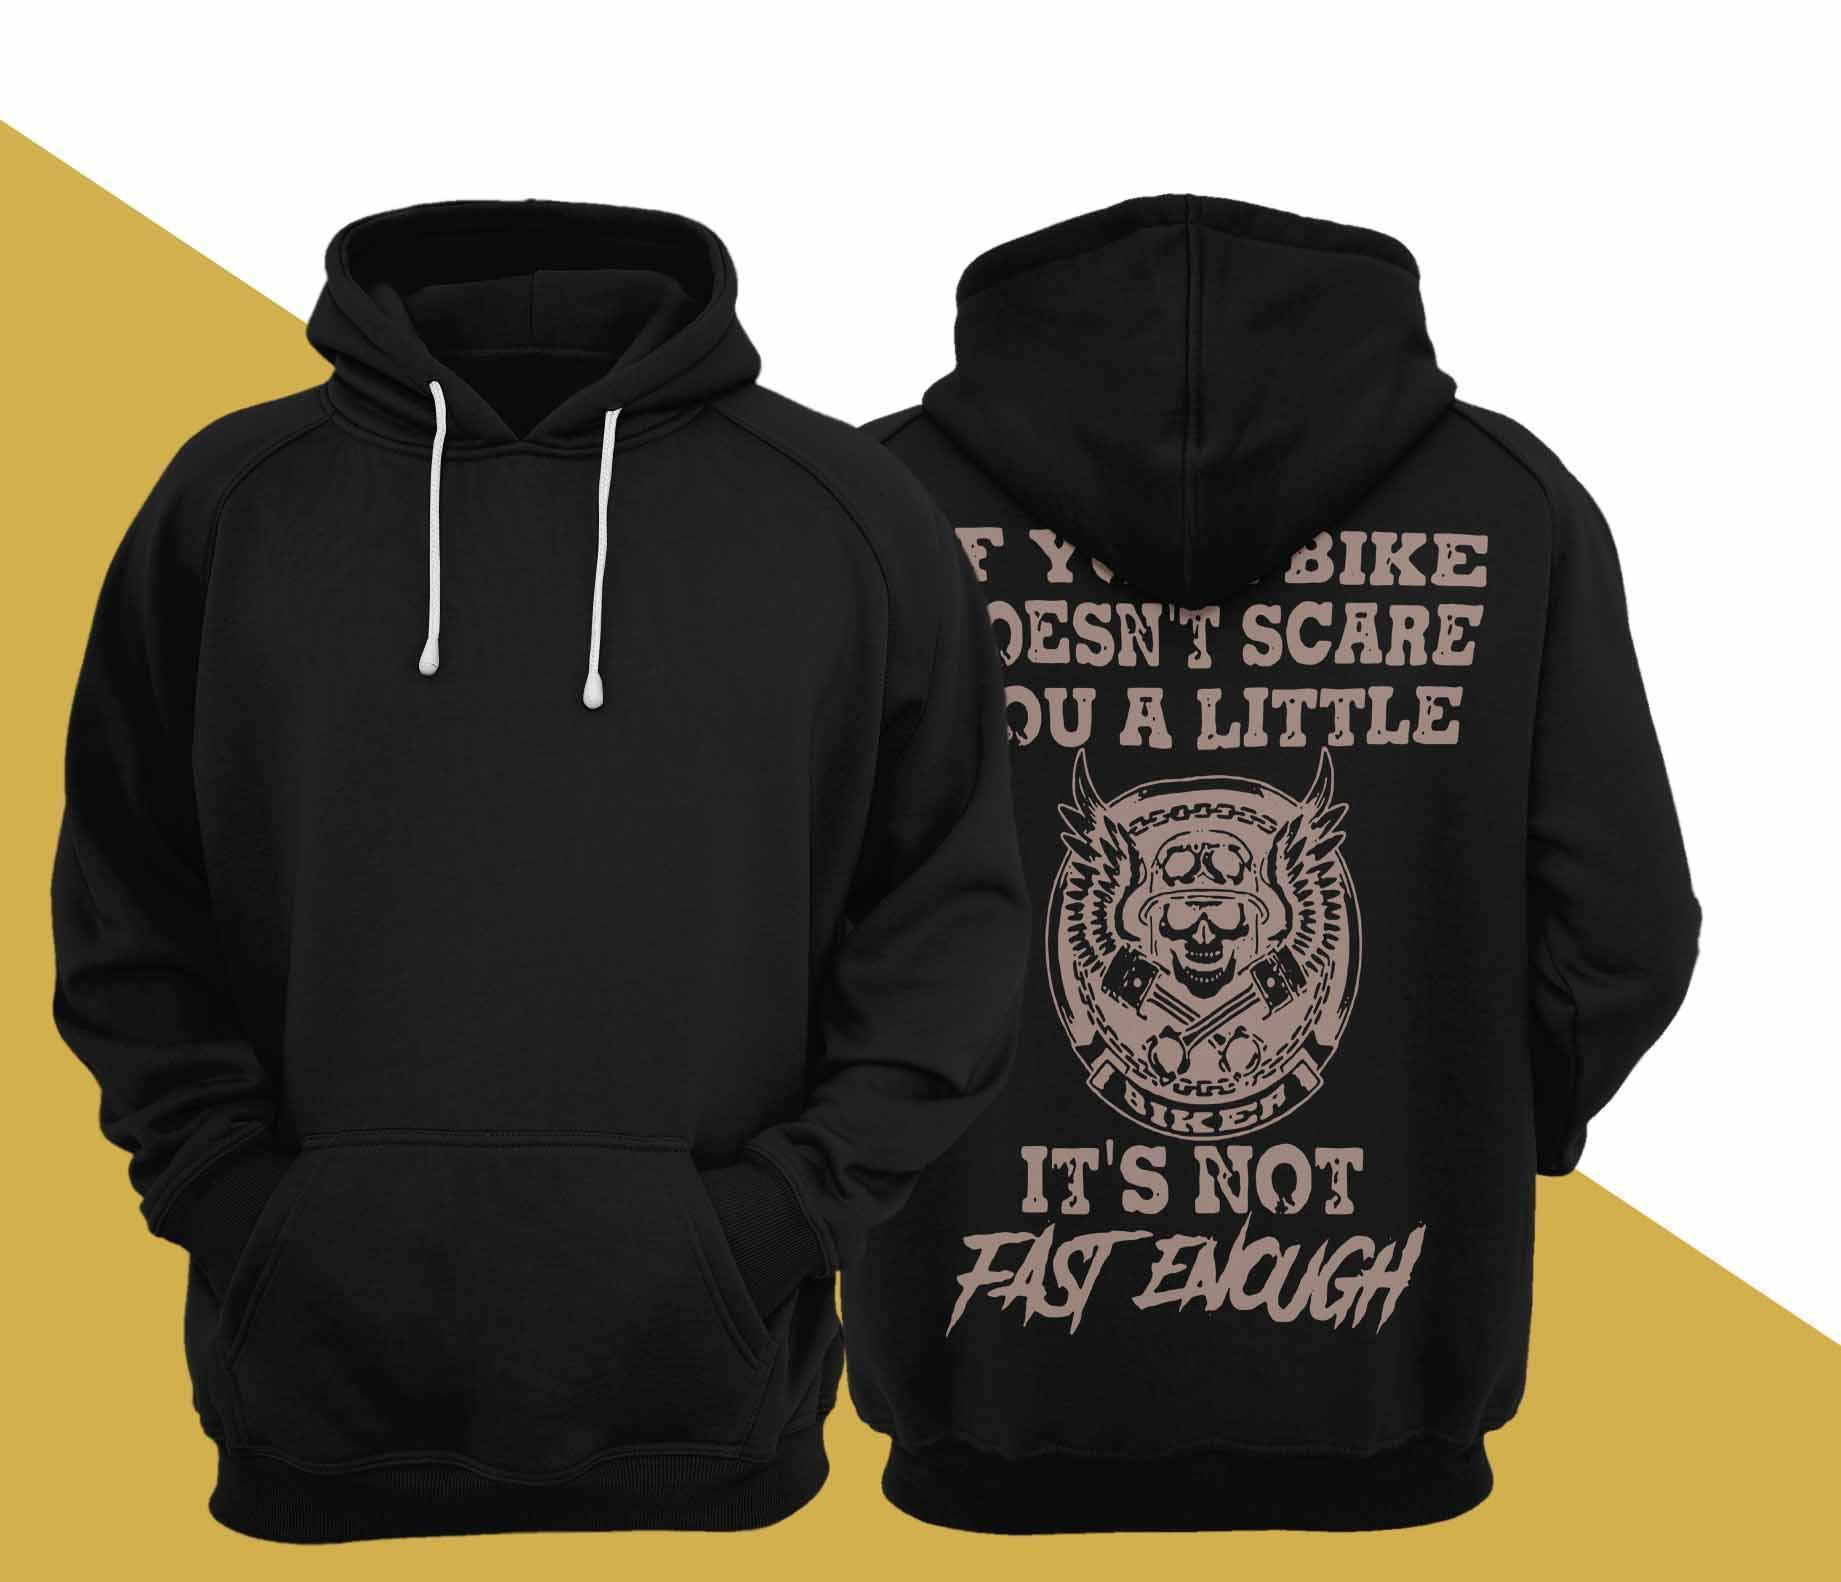 If Your Bike Doesn't Scare You A Little It's Not Fast Enough Hoodie